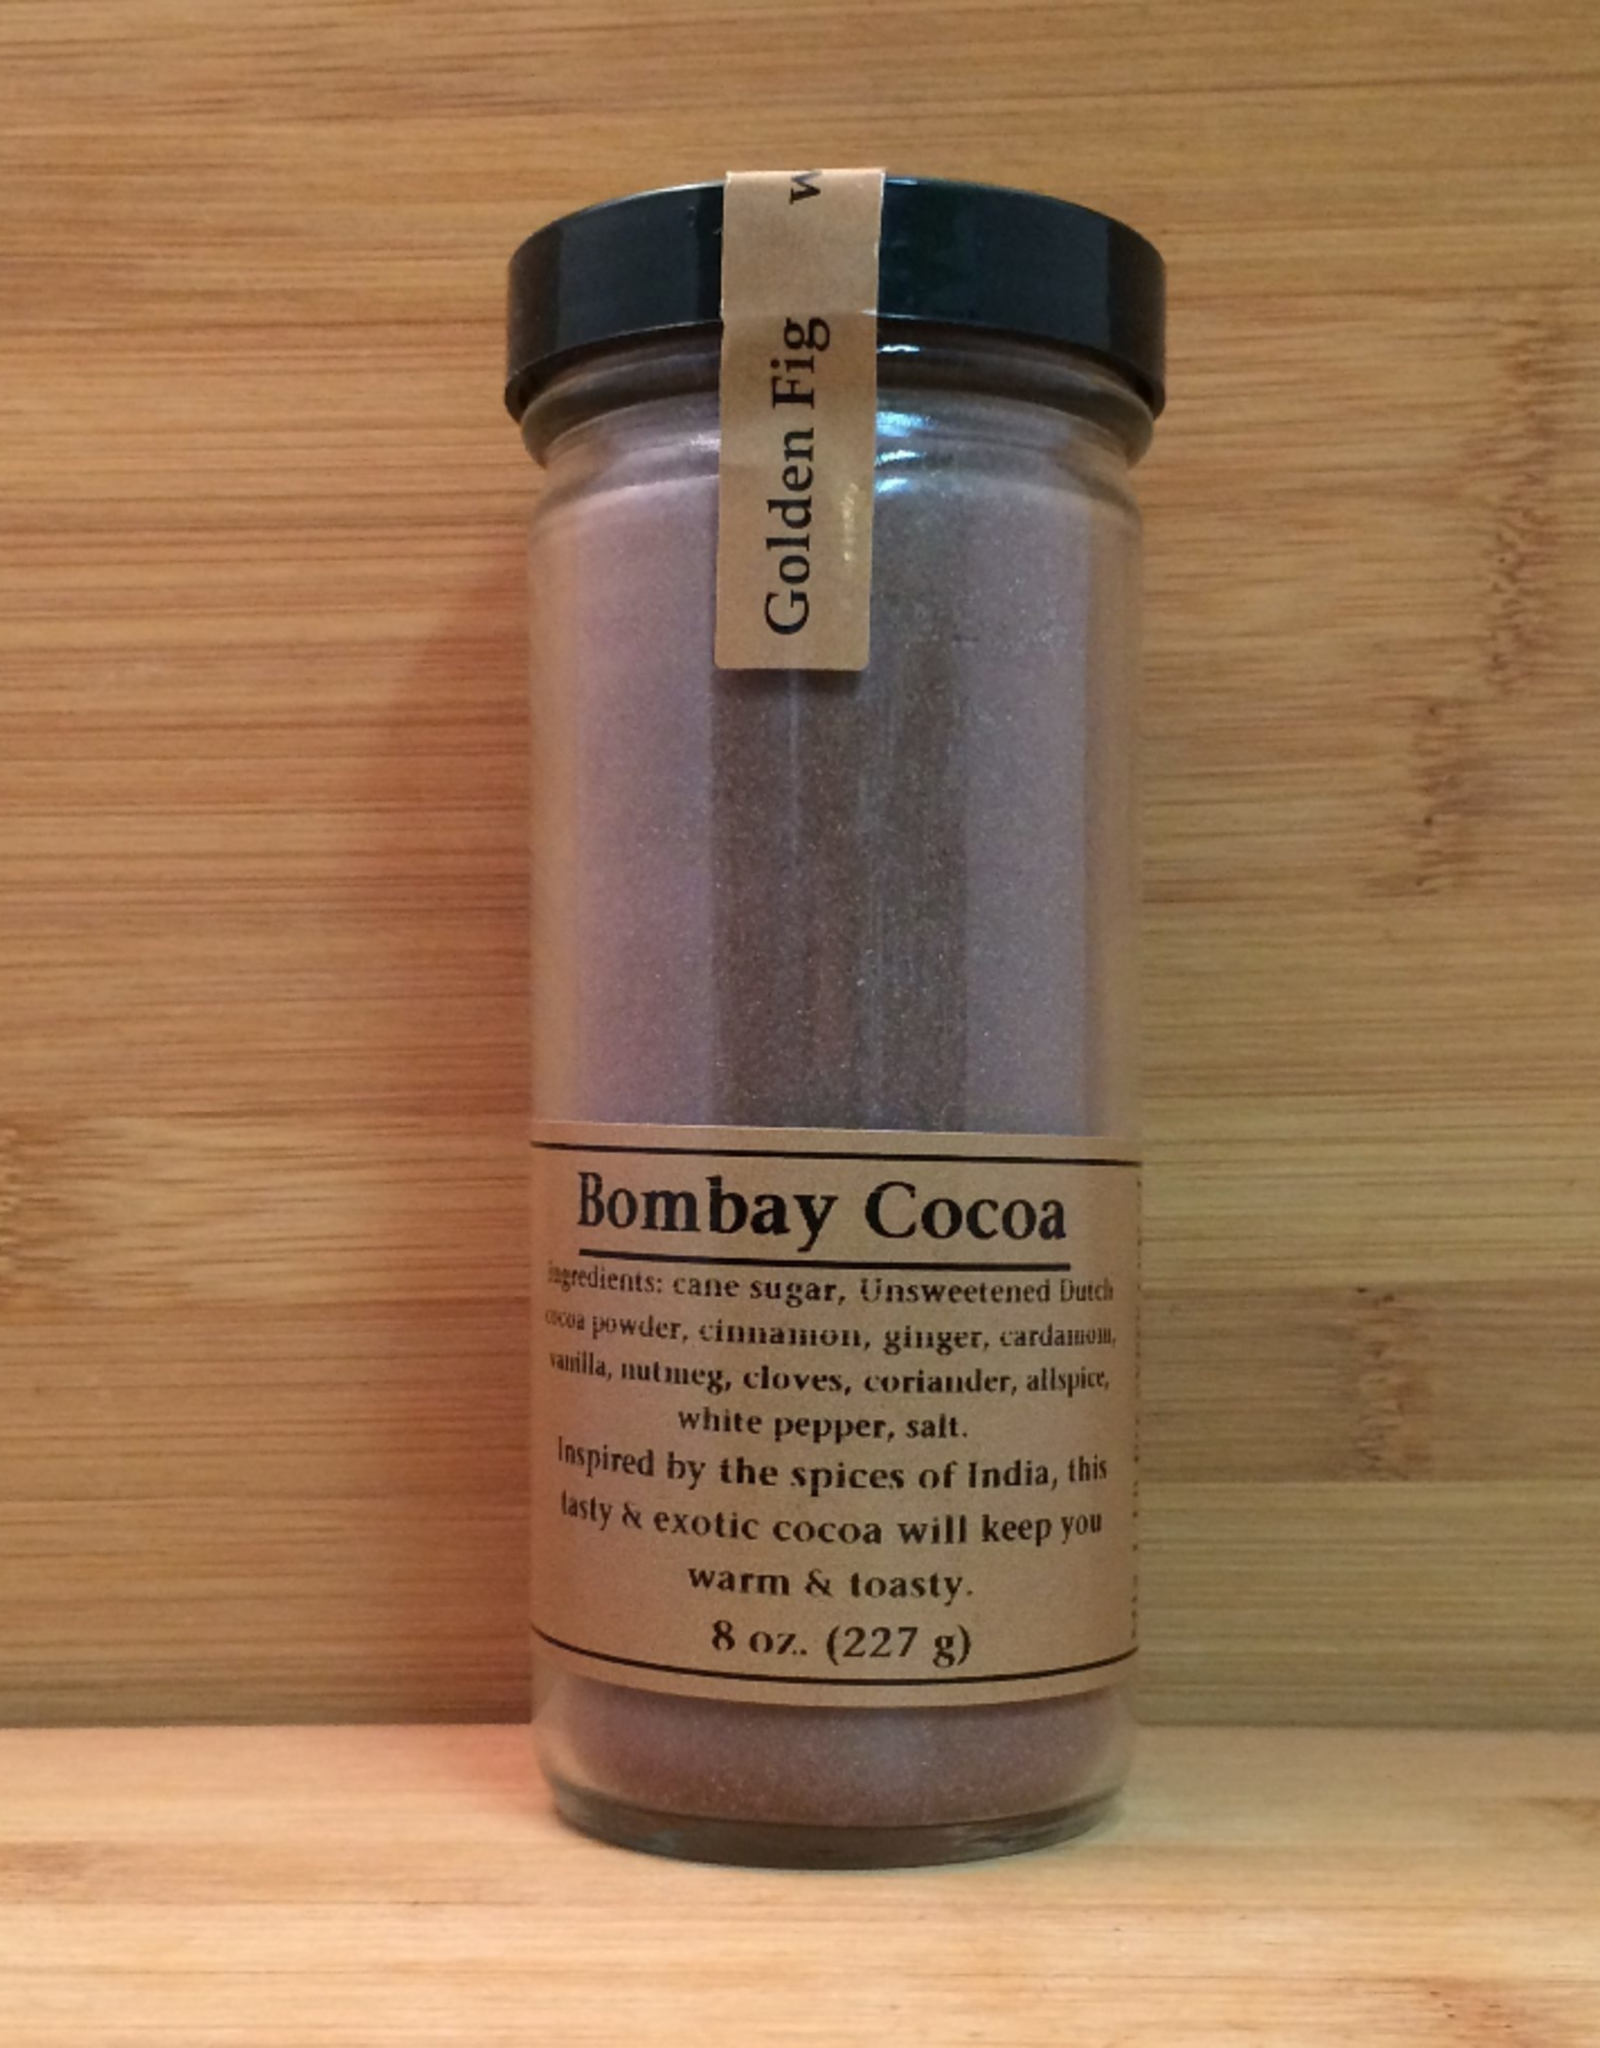 Golden Fig Bombay Cocoa